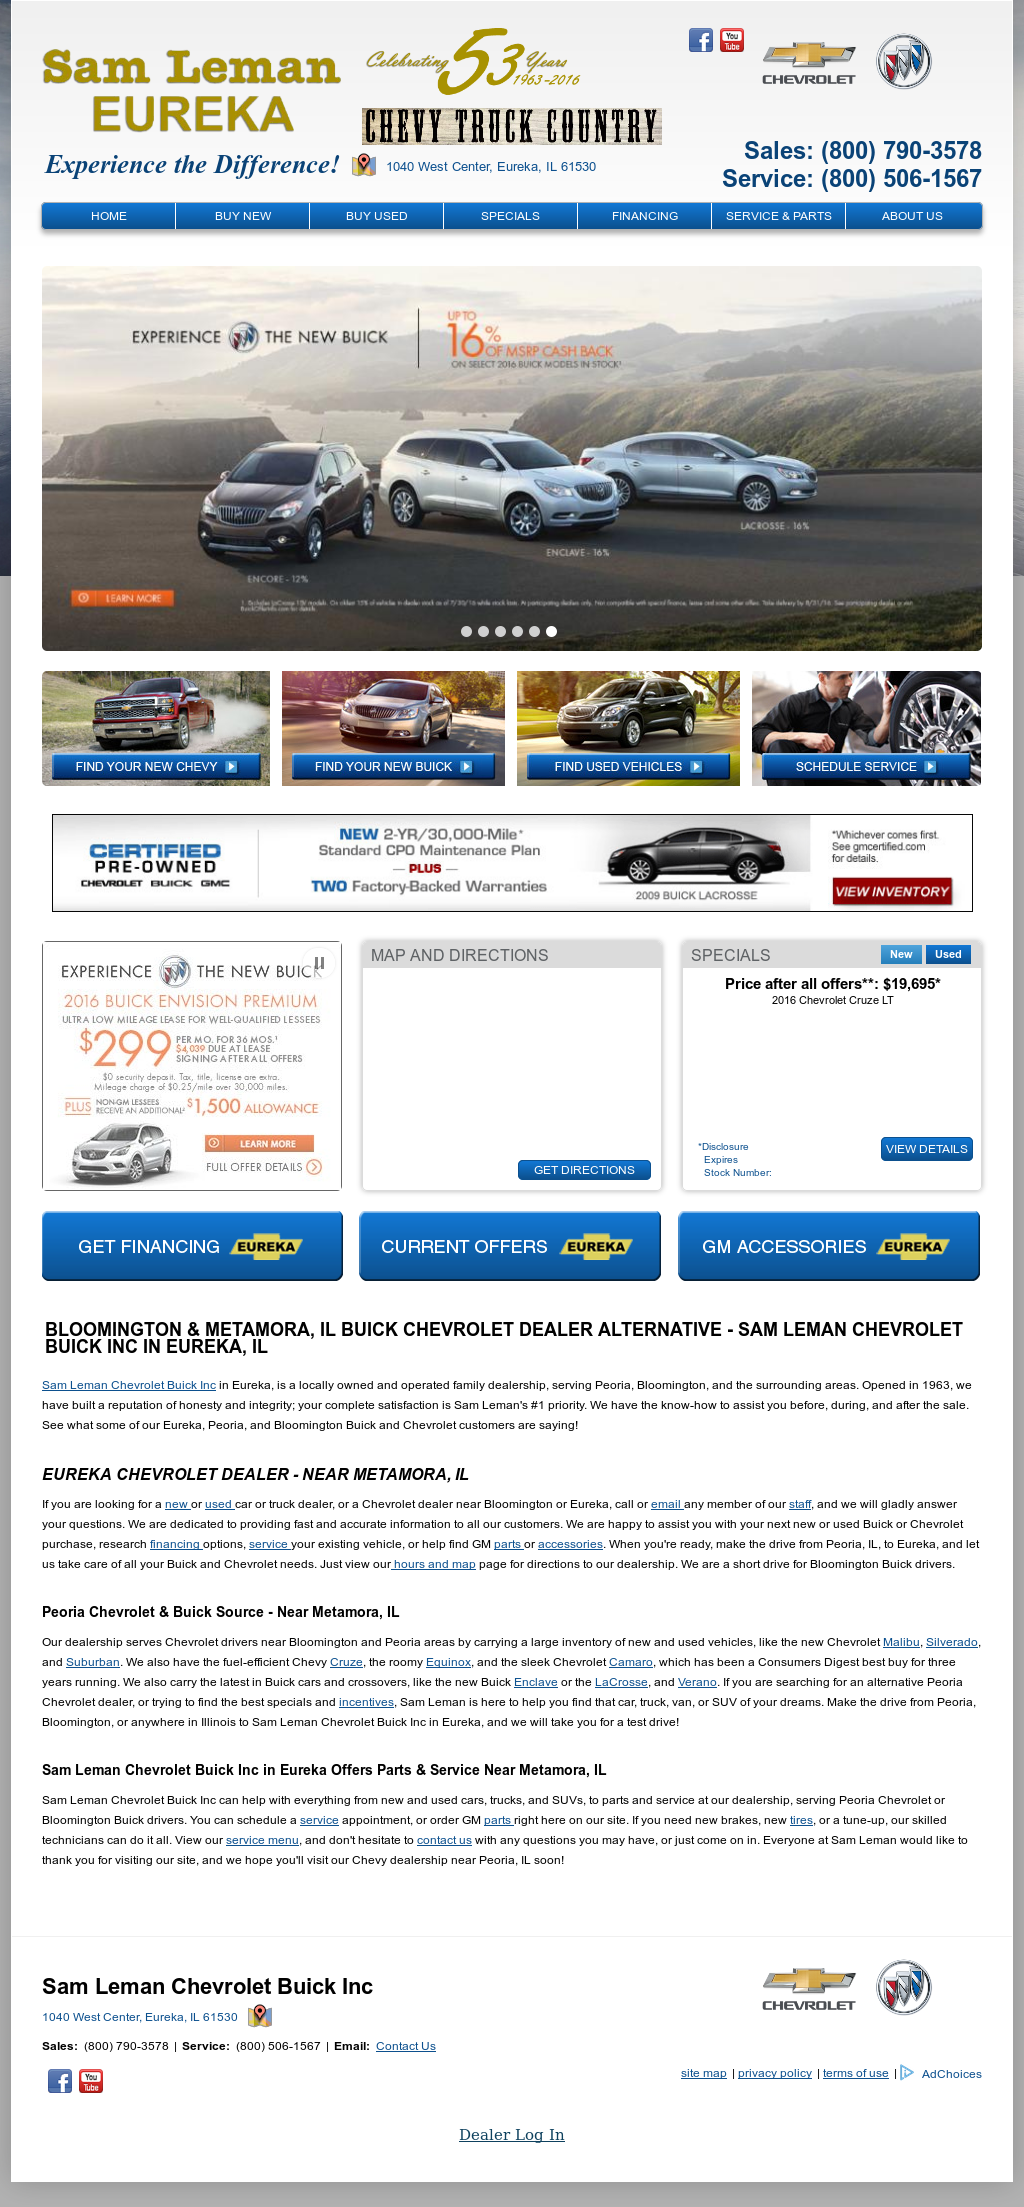 Sam Leman Chevrolet Buick petitors Revenue and Employees Owler